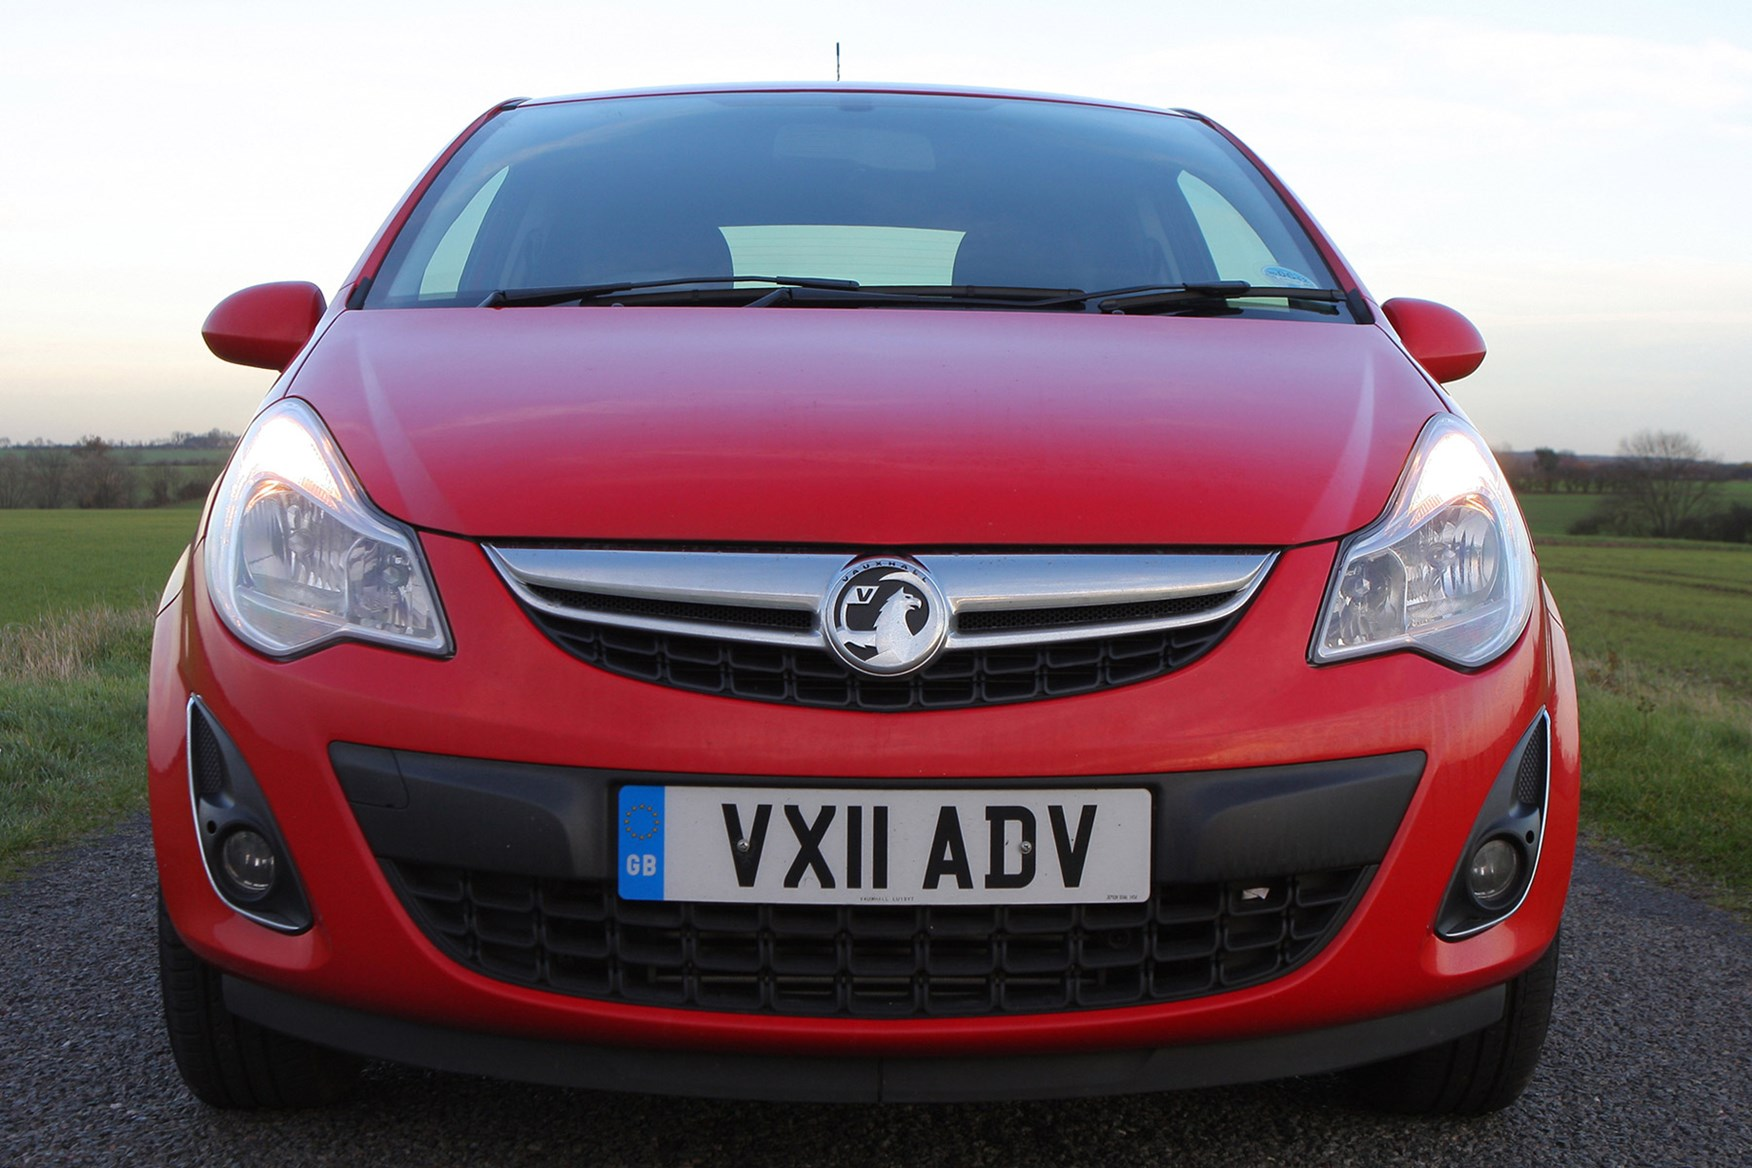 Vauxhall Corsa review on Parkers Vans - front